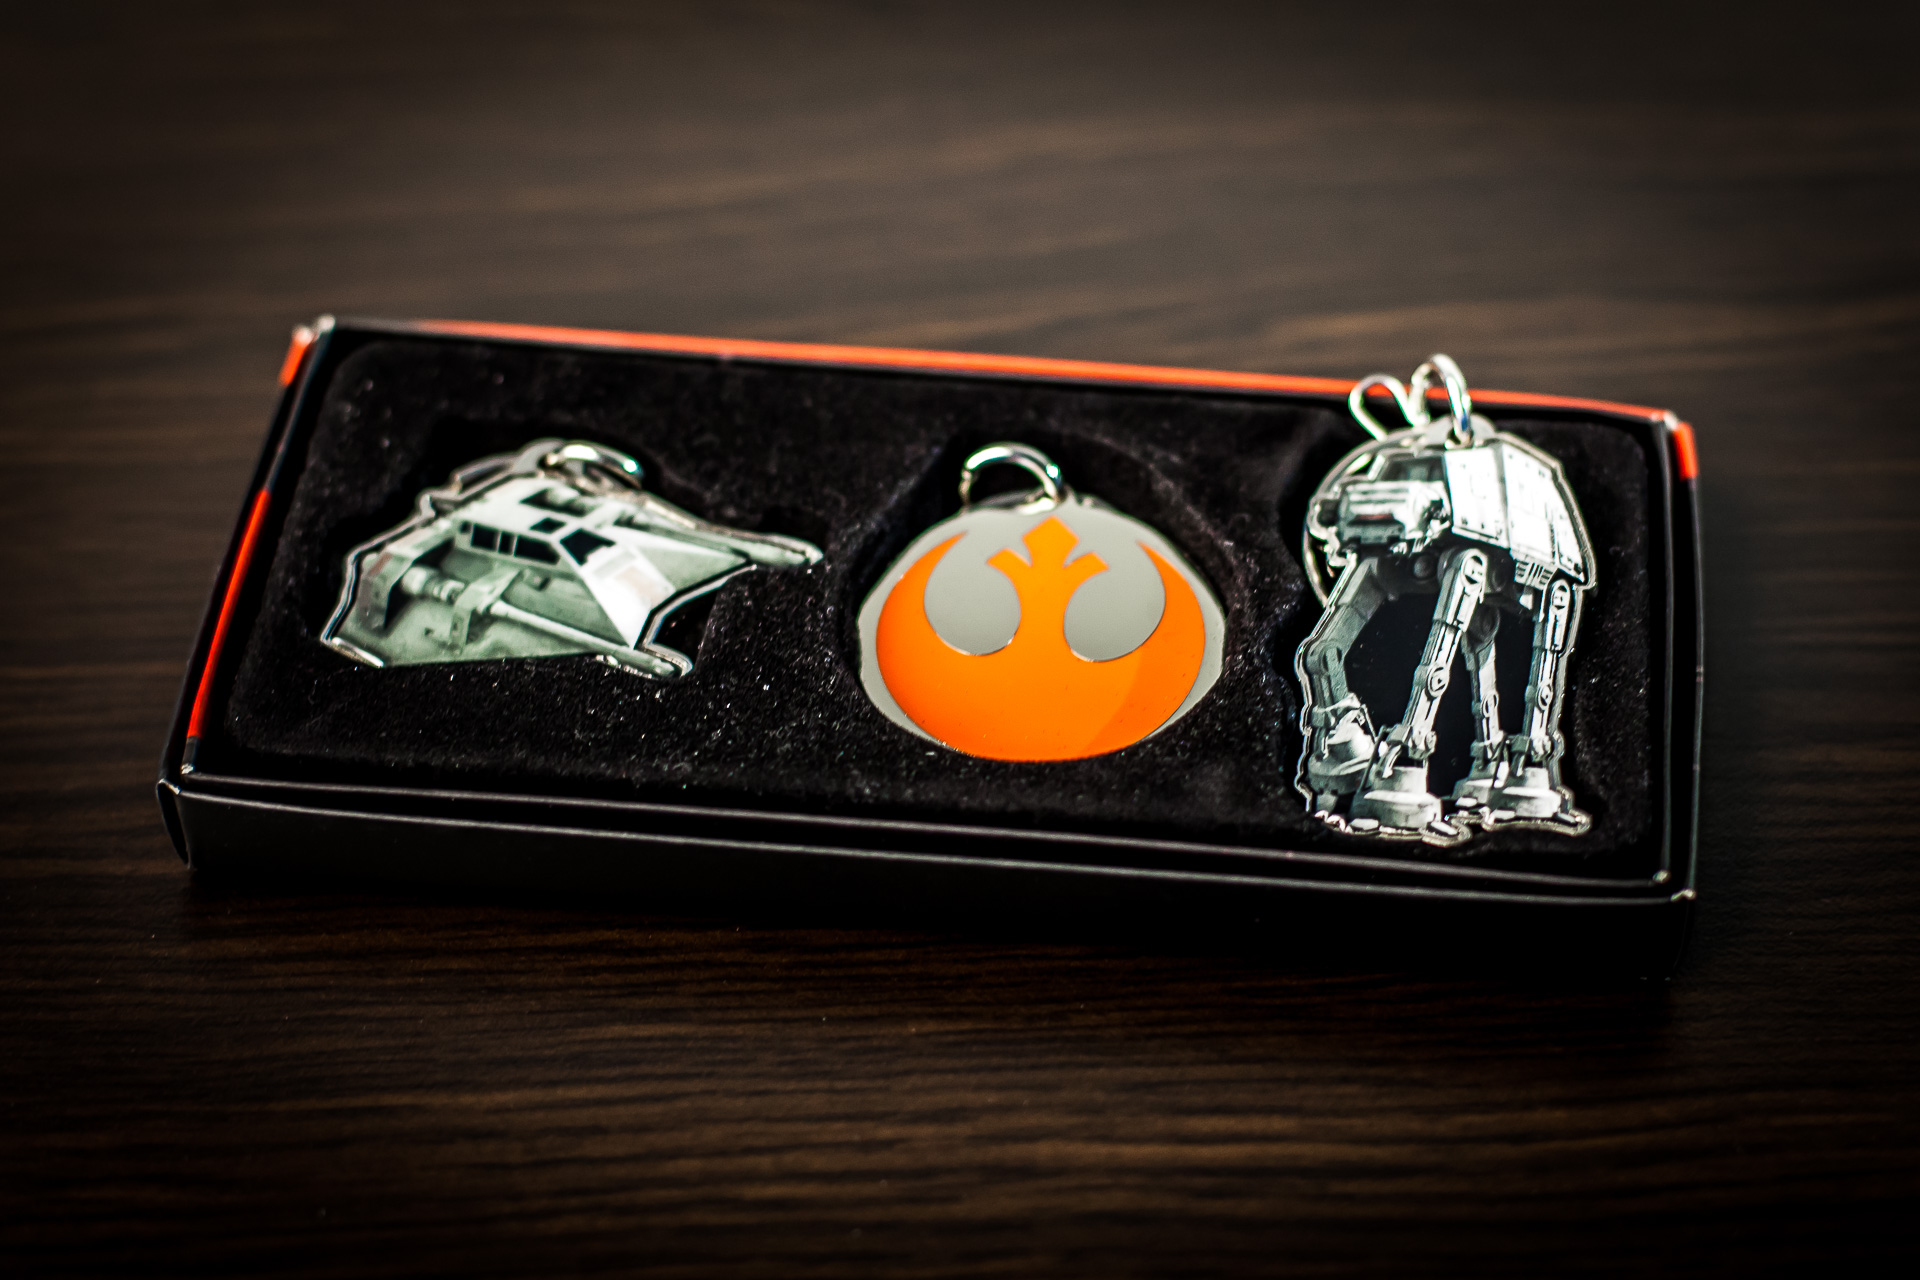 Exclusive Star Wars keychains come to Newegg